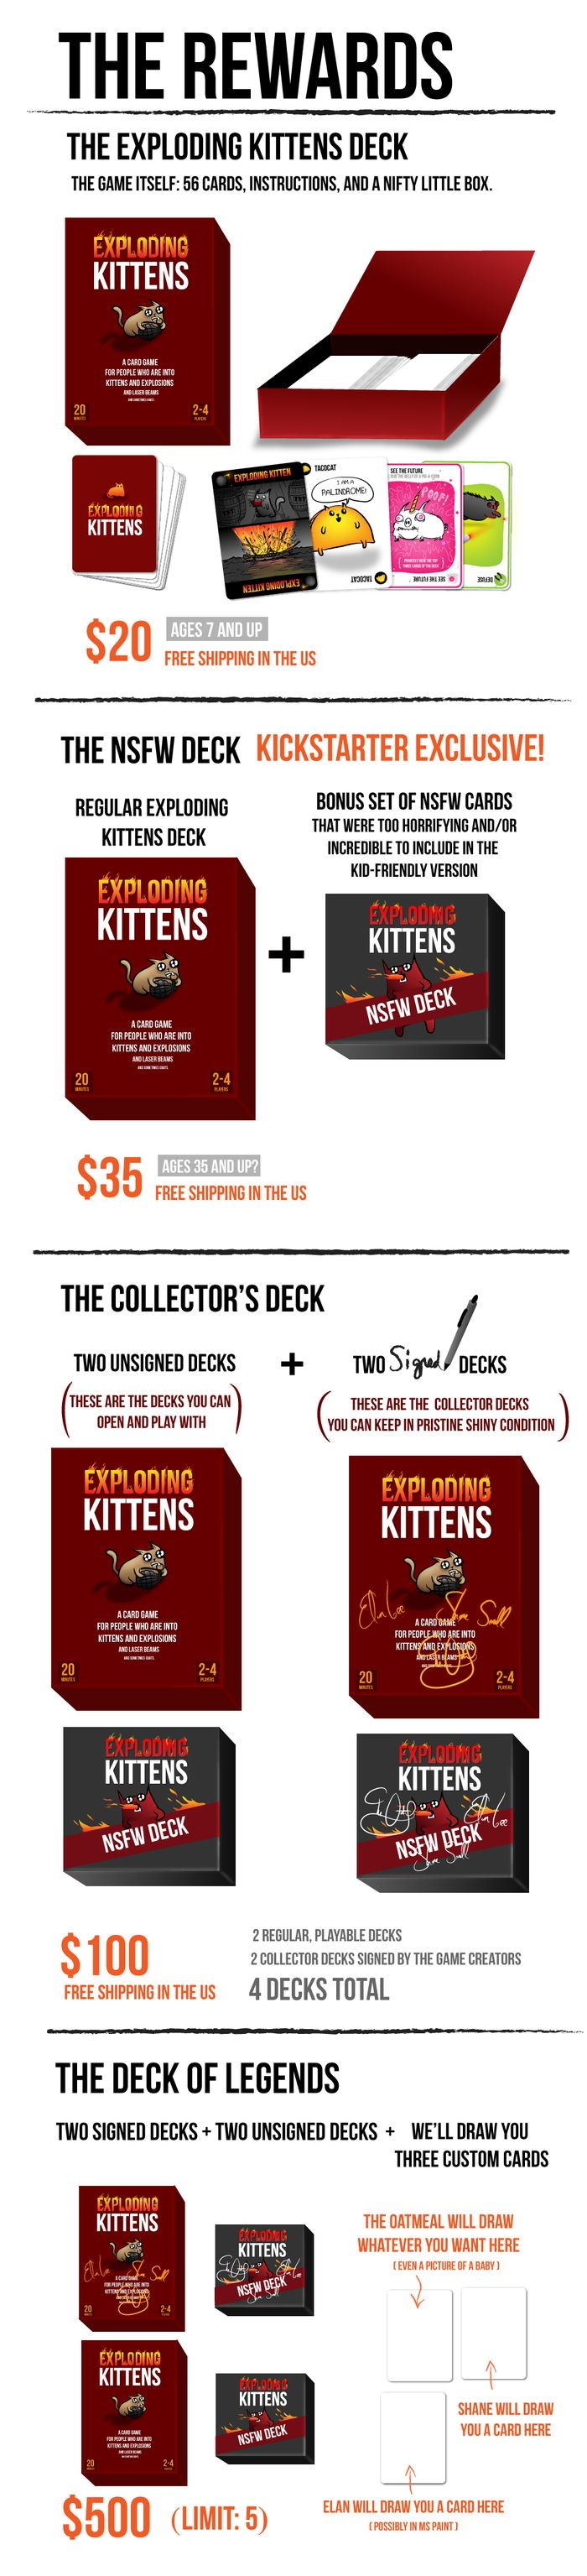 Drawing Connections. Exploding Kittens by Elan Lee — Kickstarter